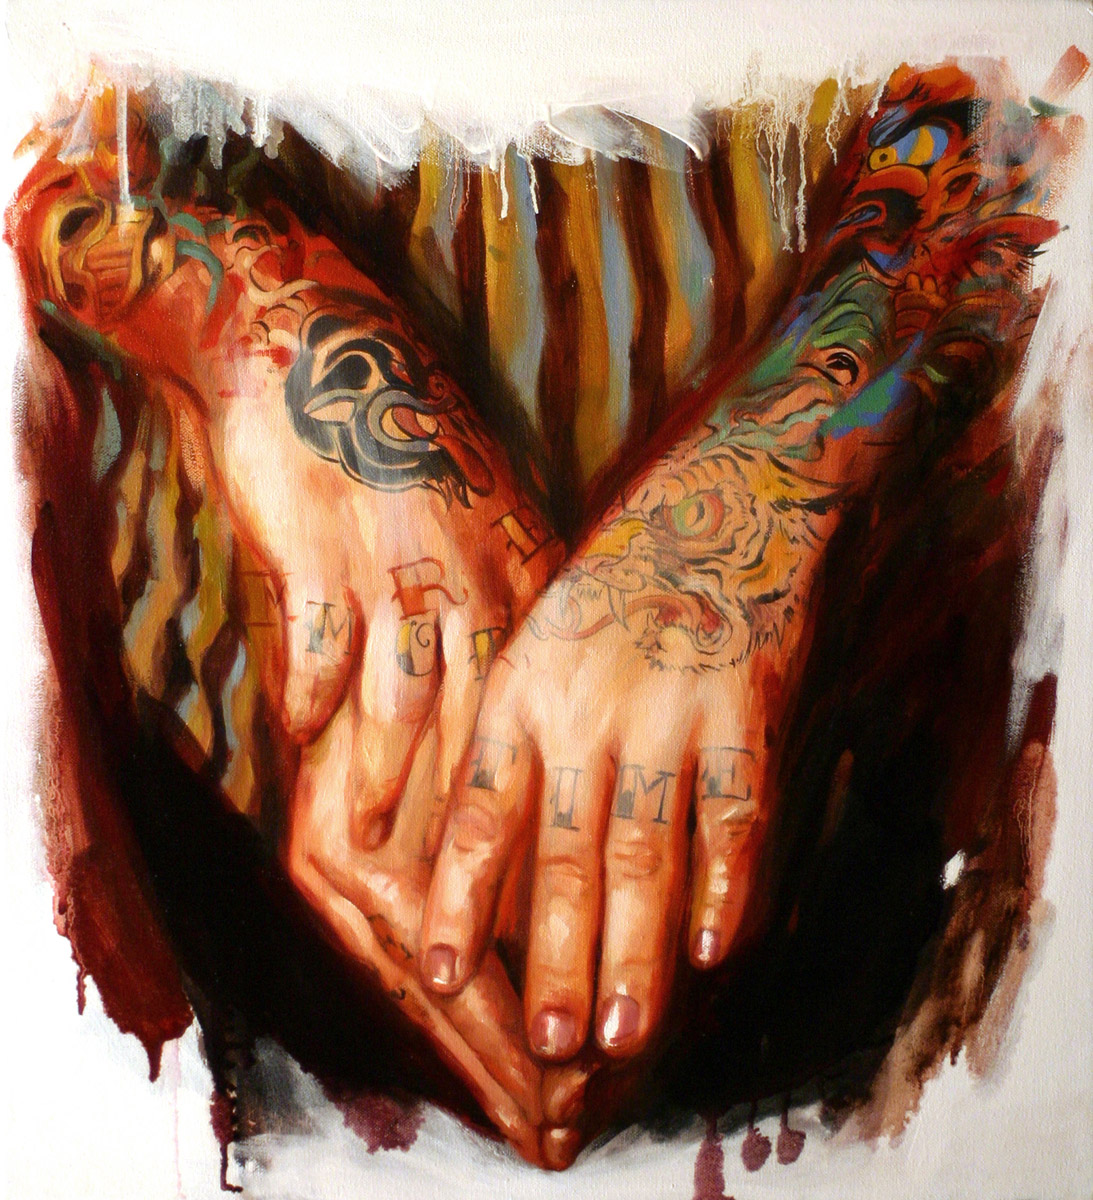 "'Jason Schroder's Hands', oil on canvas, 18"" x 18"", 2007, Collection of Jason Schroder"